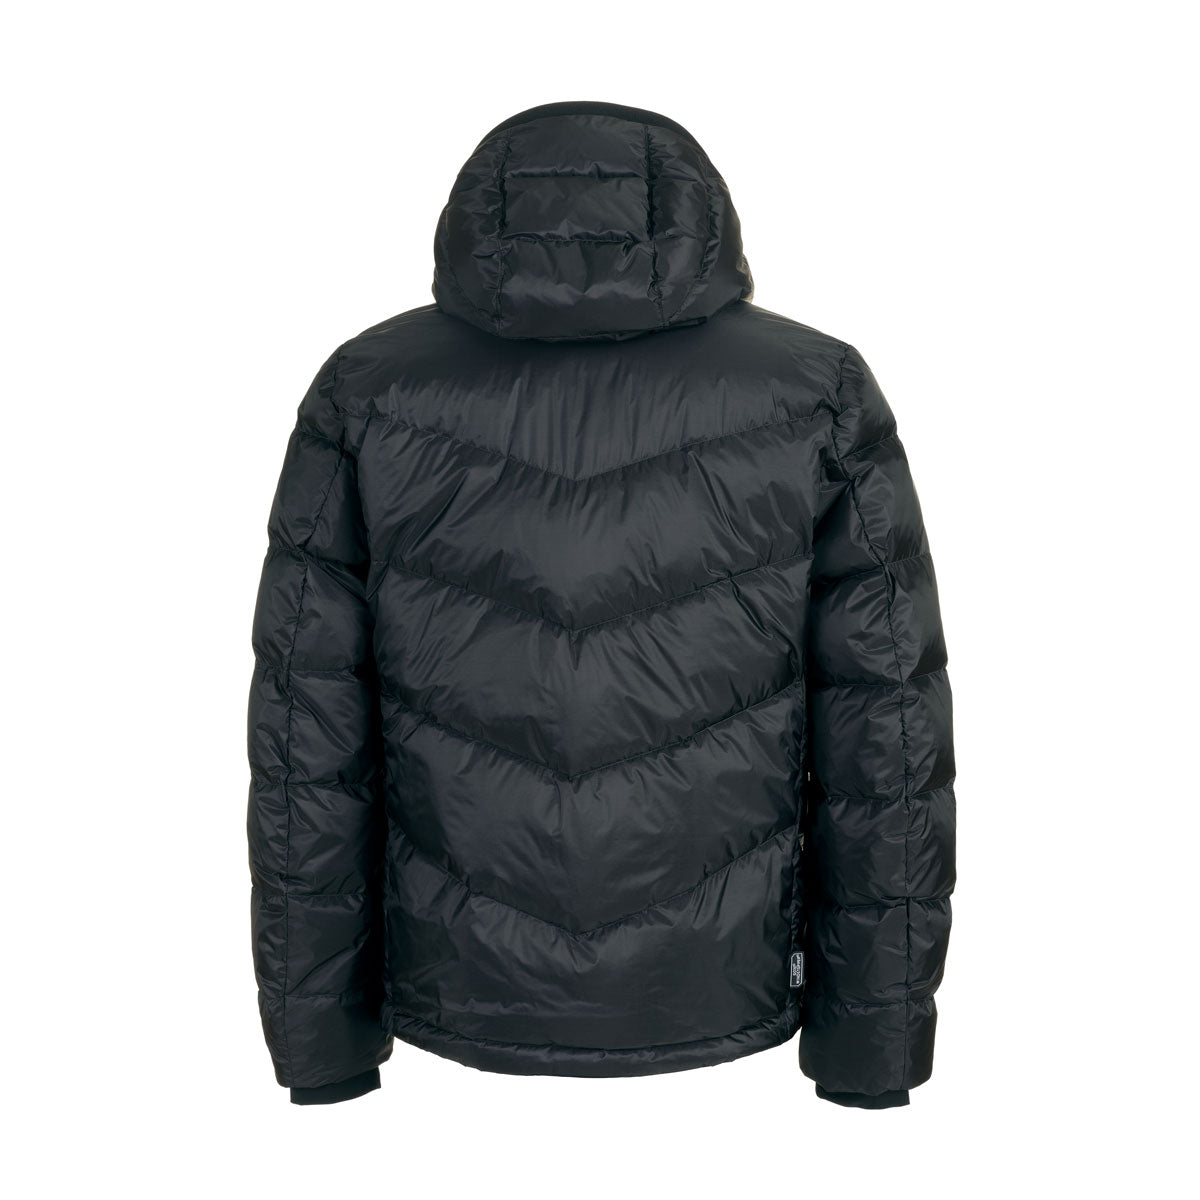 Woolrich Chevron Hooded Jacket, Black